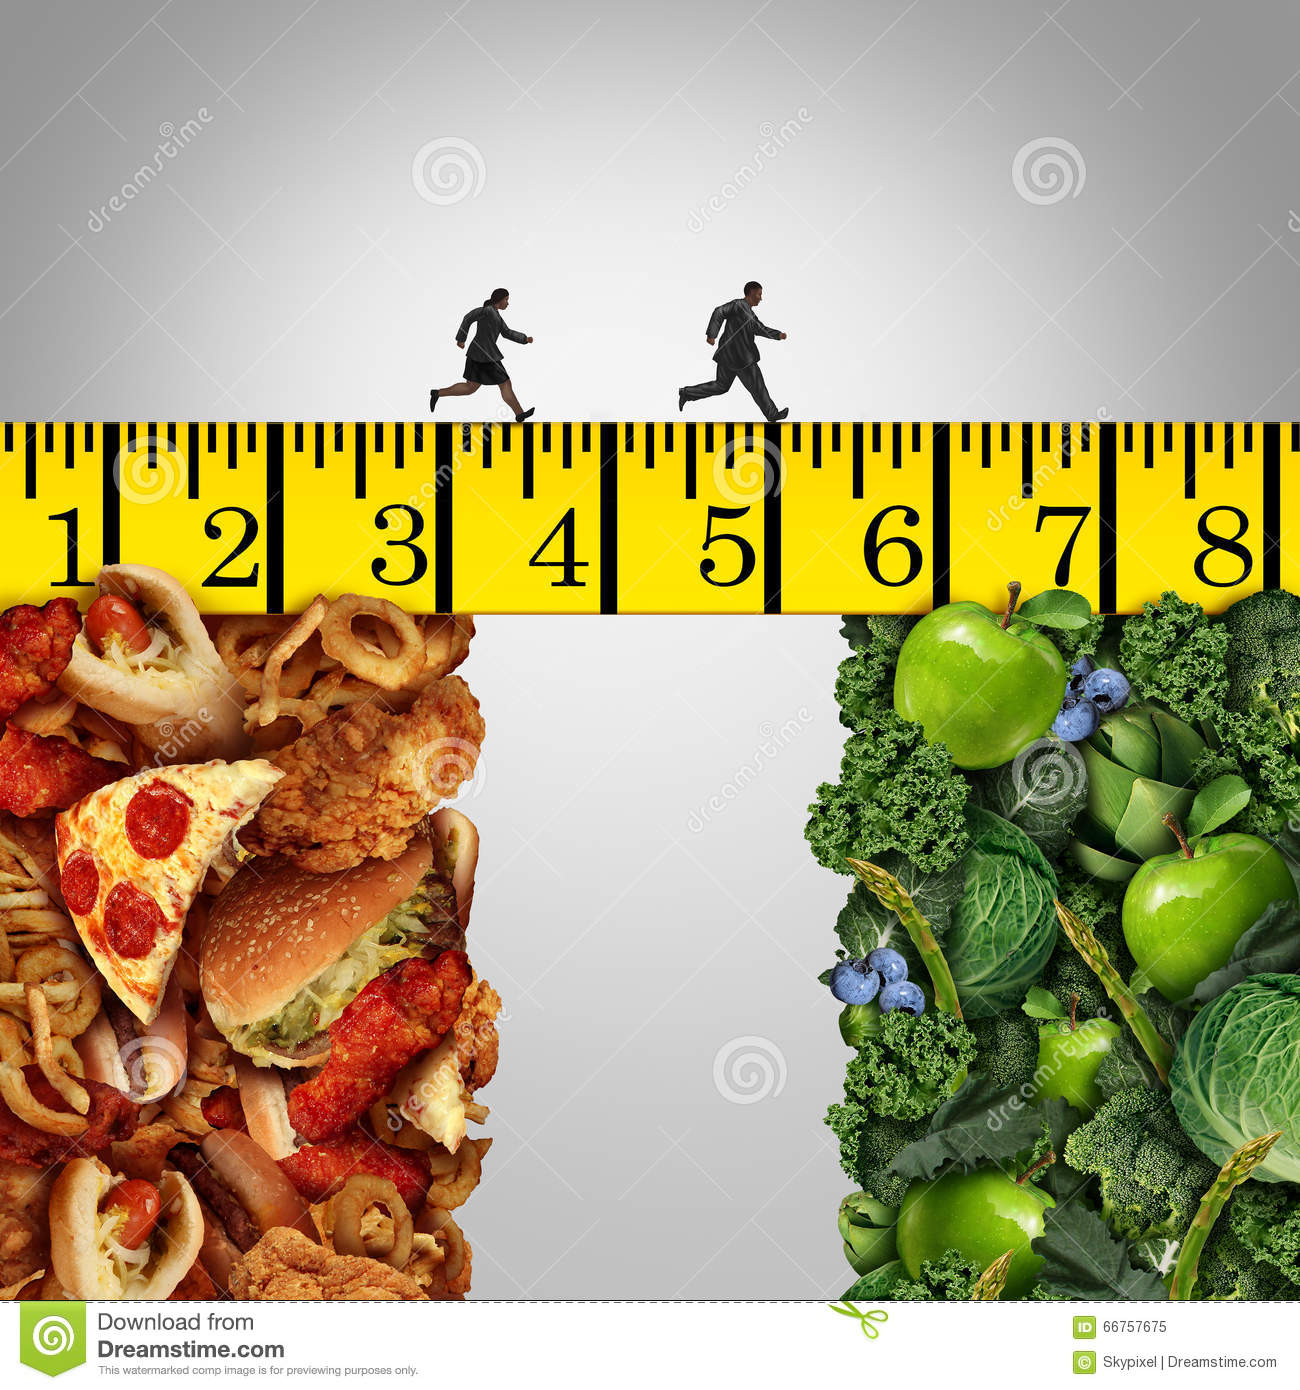 thesis about healthy lifestyle Proper healthy lifestyles 1350 words | 5 pages proper healthy lifestyles start at the households and begin with parenting our leaders of guam need to recognize that diabetes is a growing issue on the island.